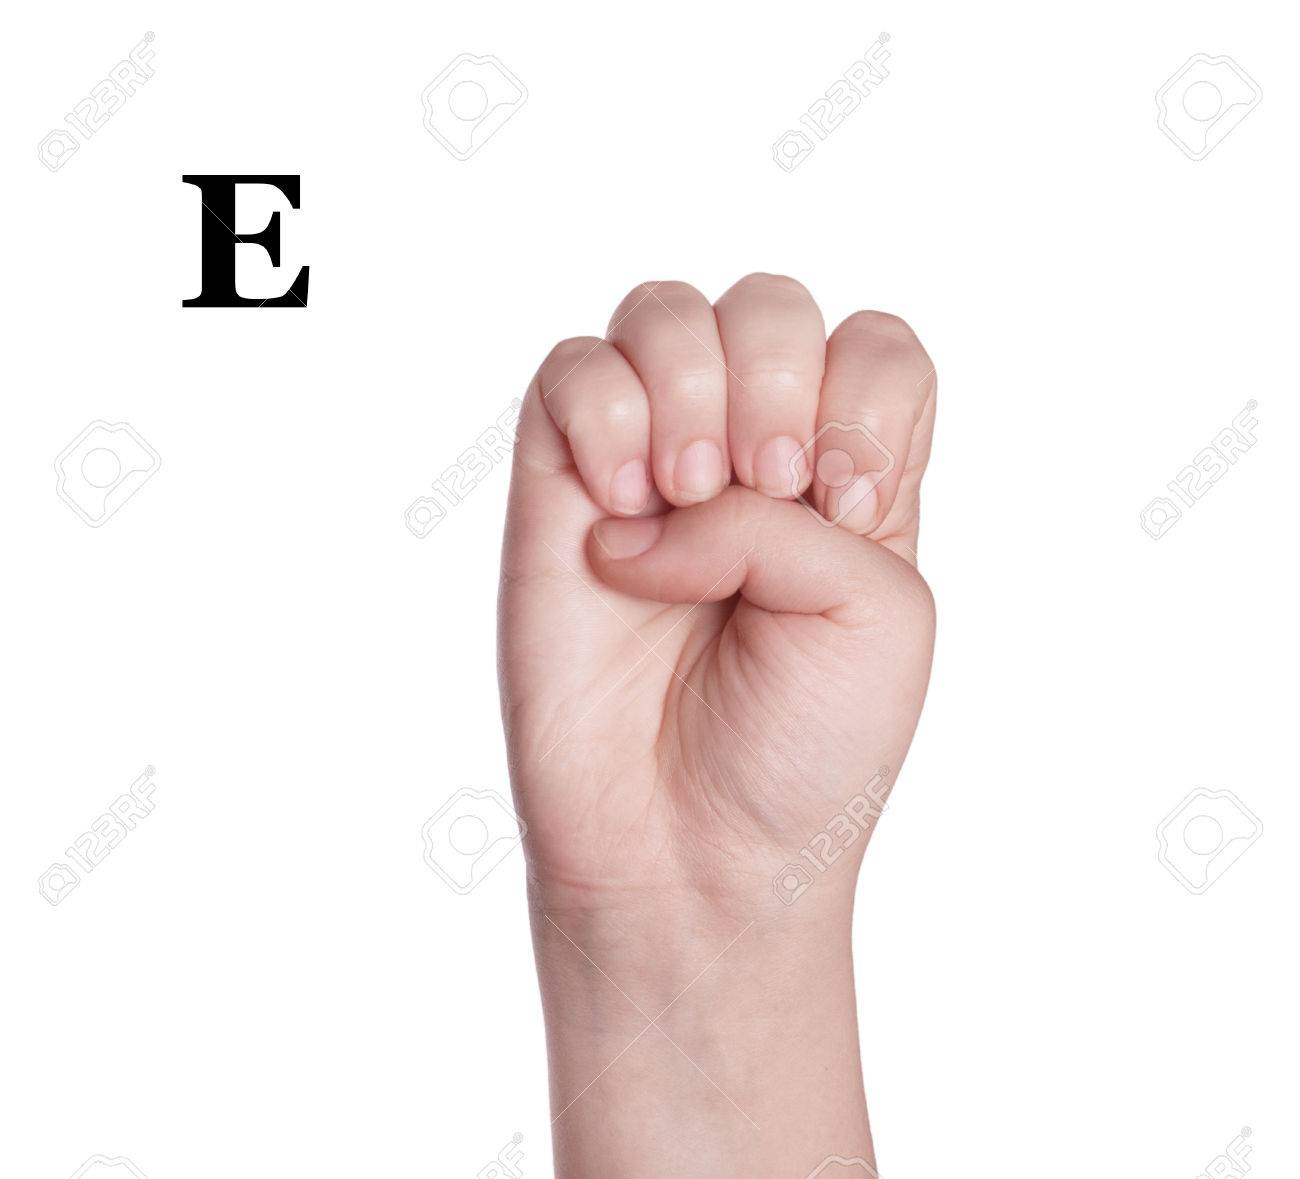 Finger spelling the alphabet in american sign language asl the letter e stock